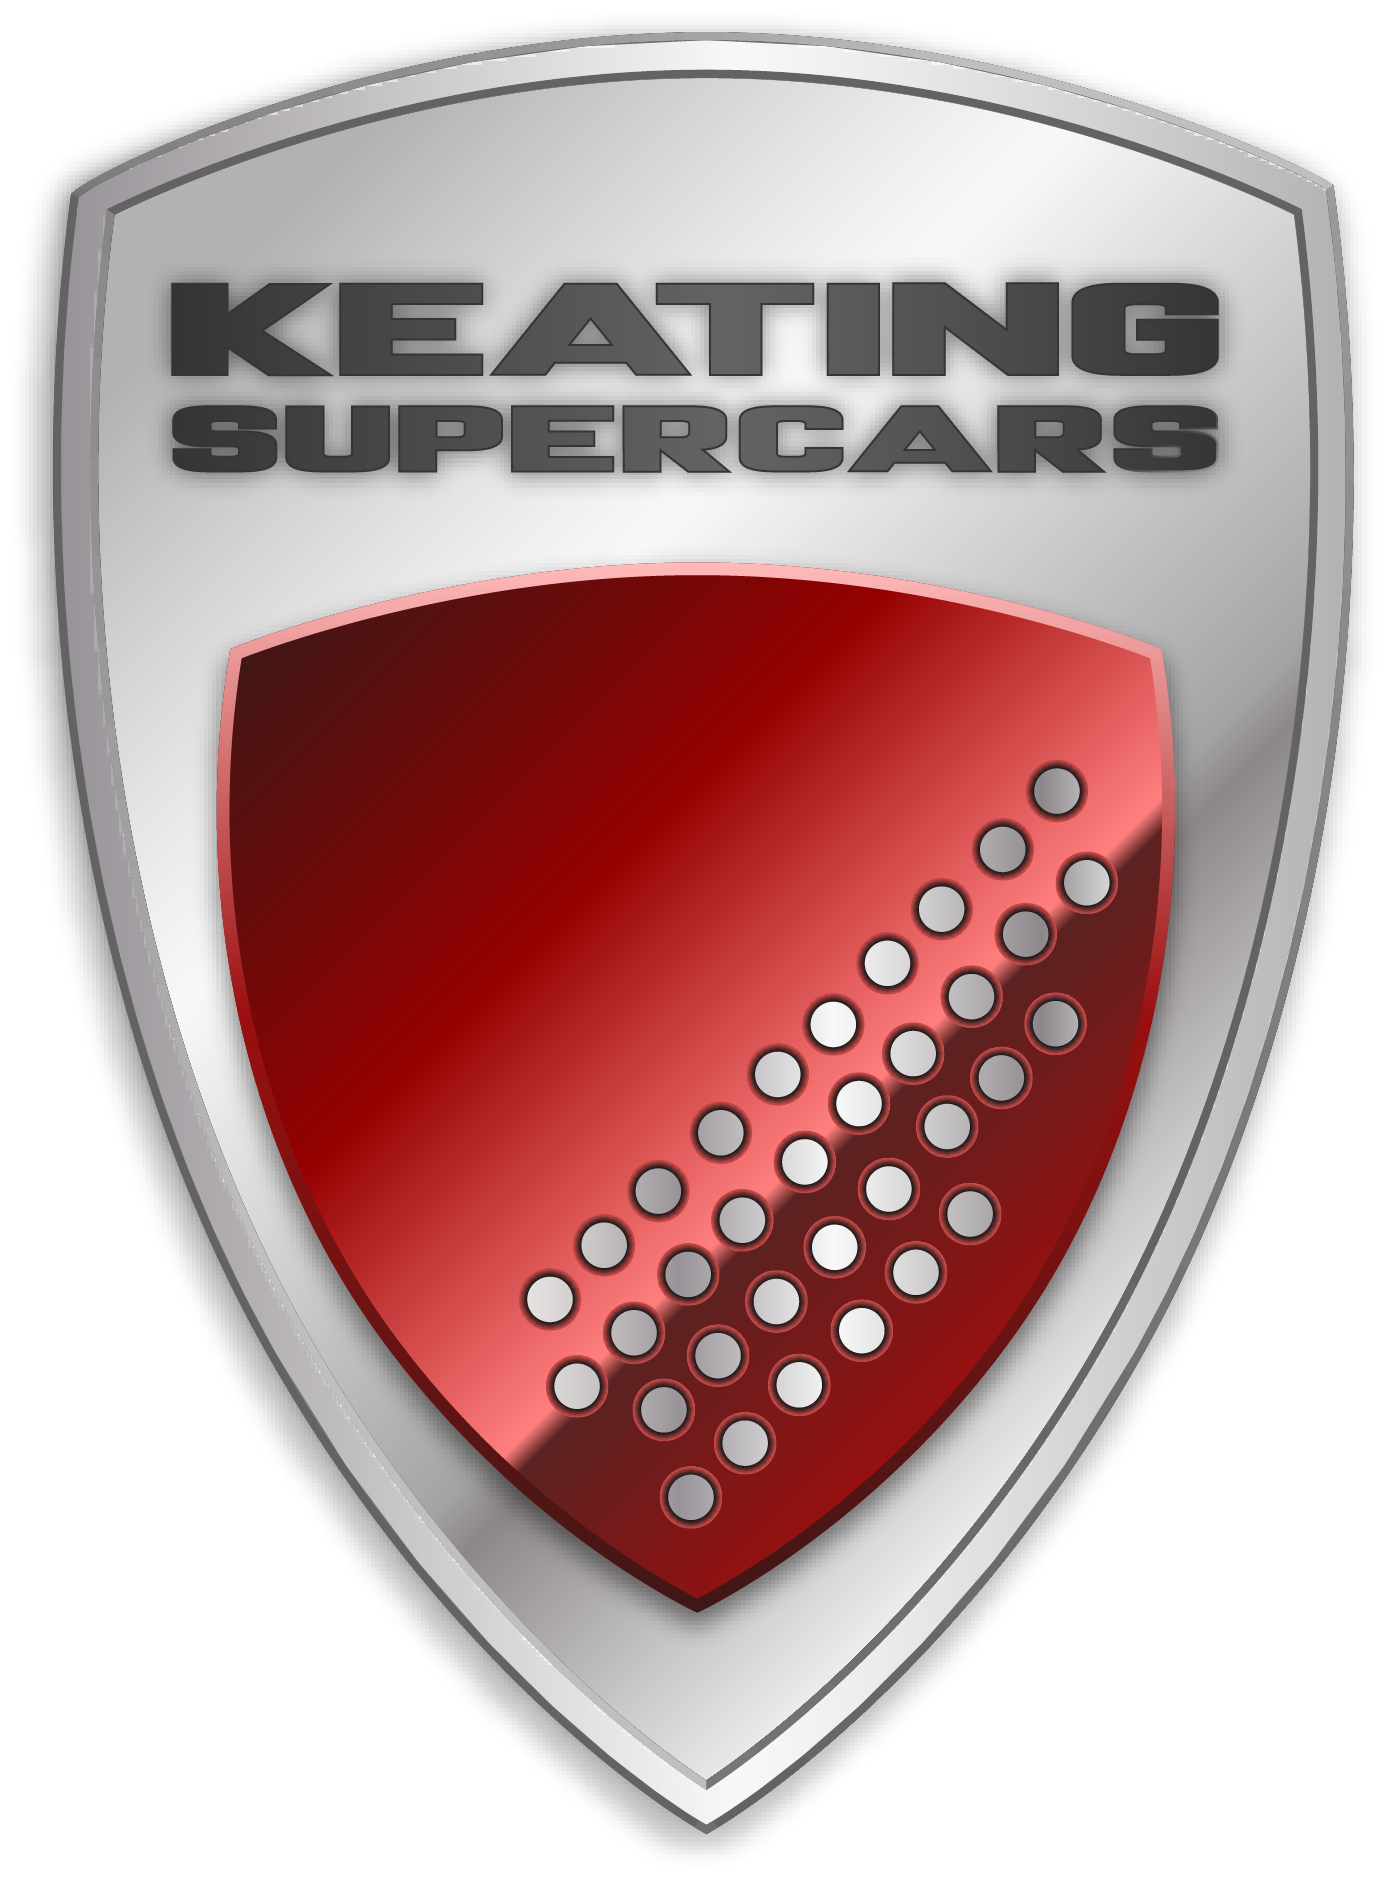 Keating Supercars